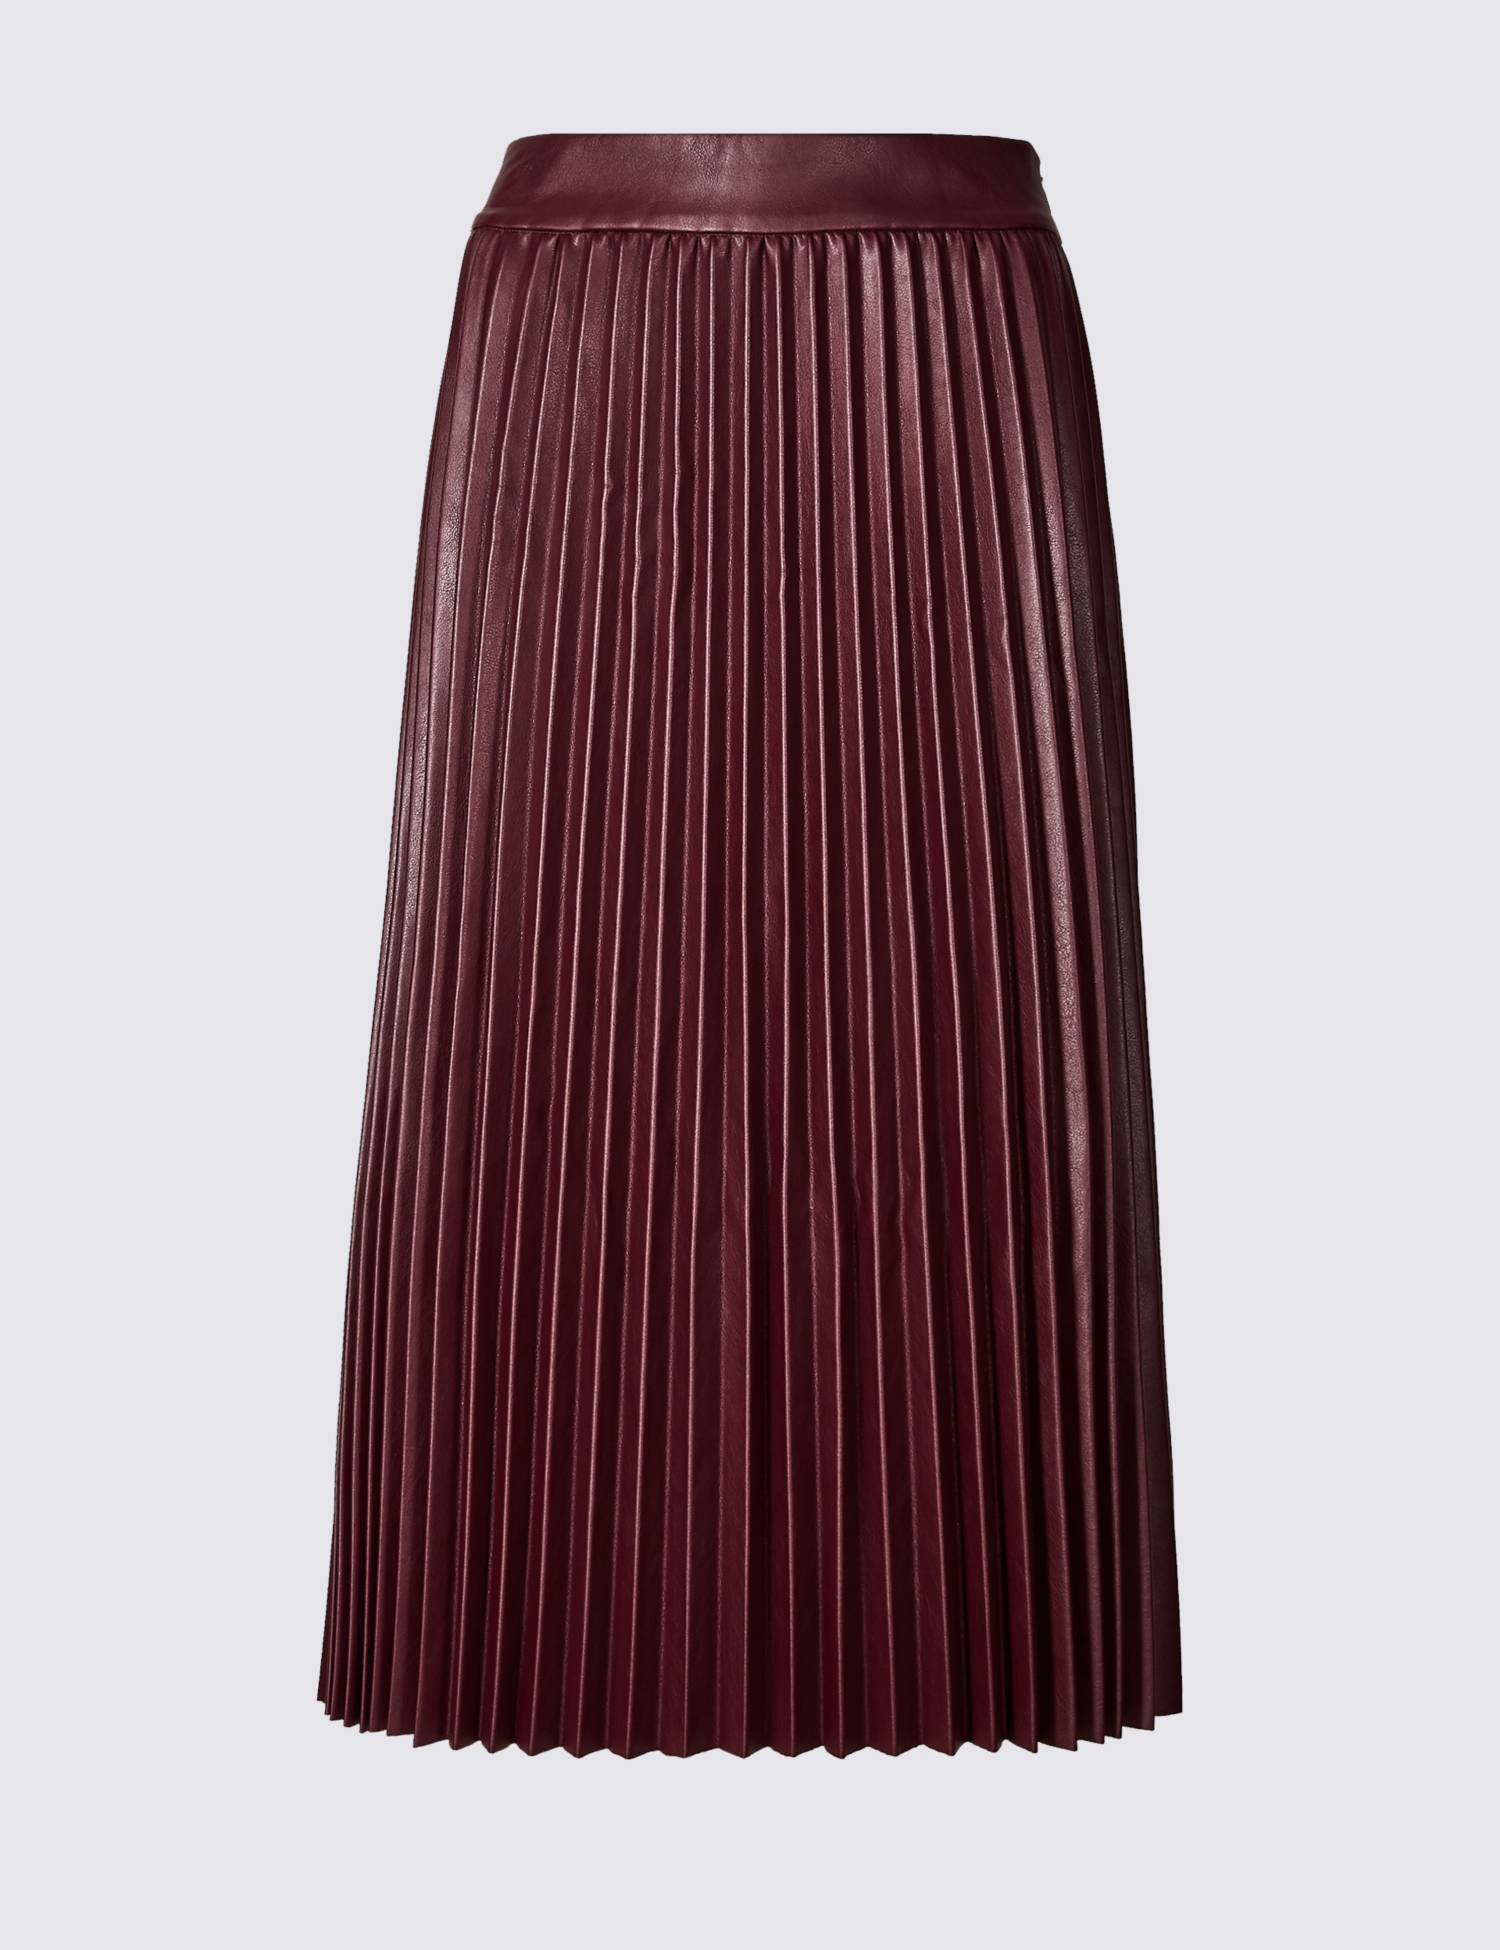 ac3279ed76 All versions of the skirt are also available for the pretty affordable  price of £39.50.